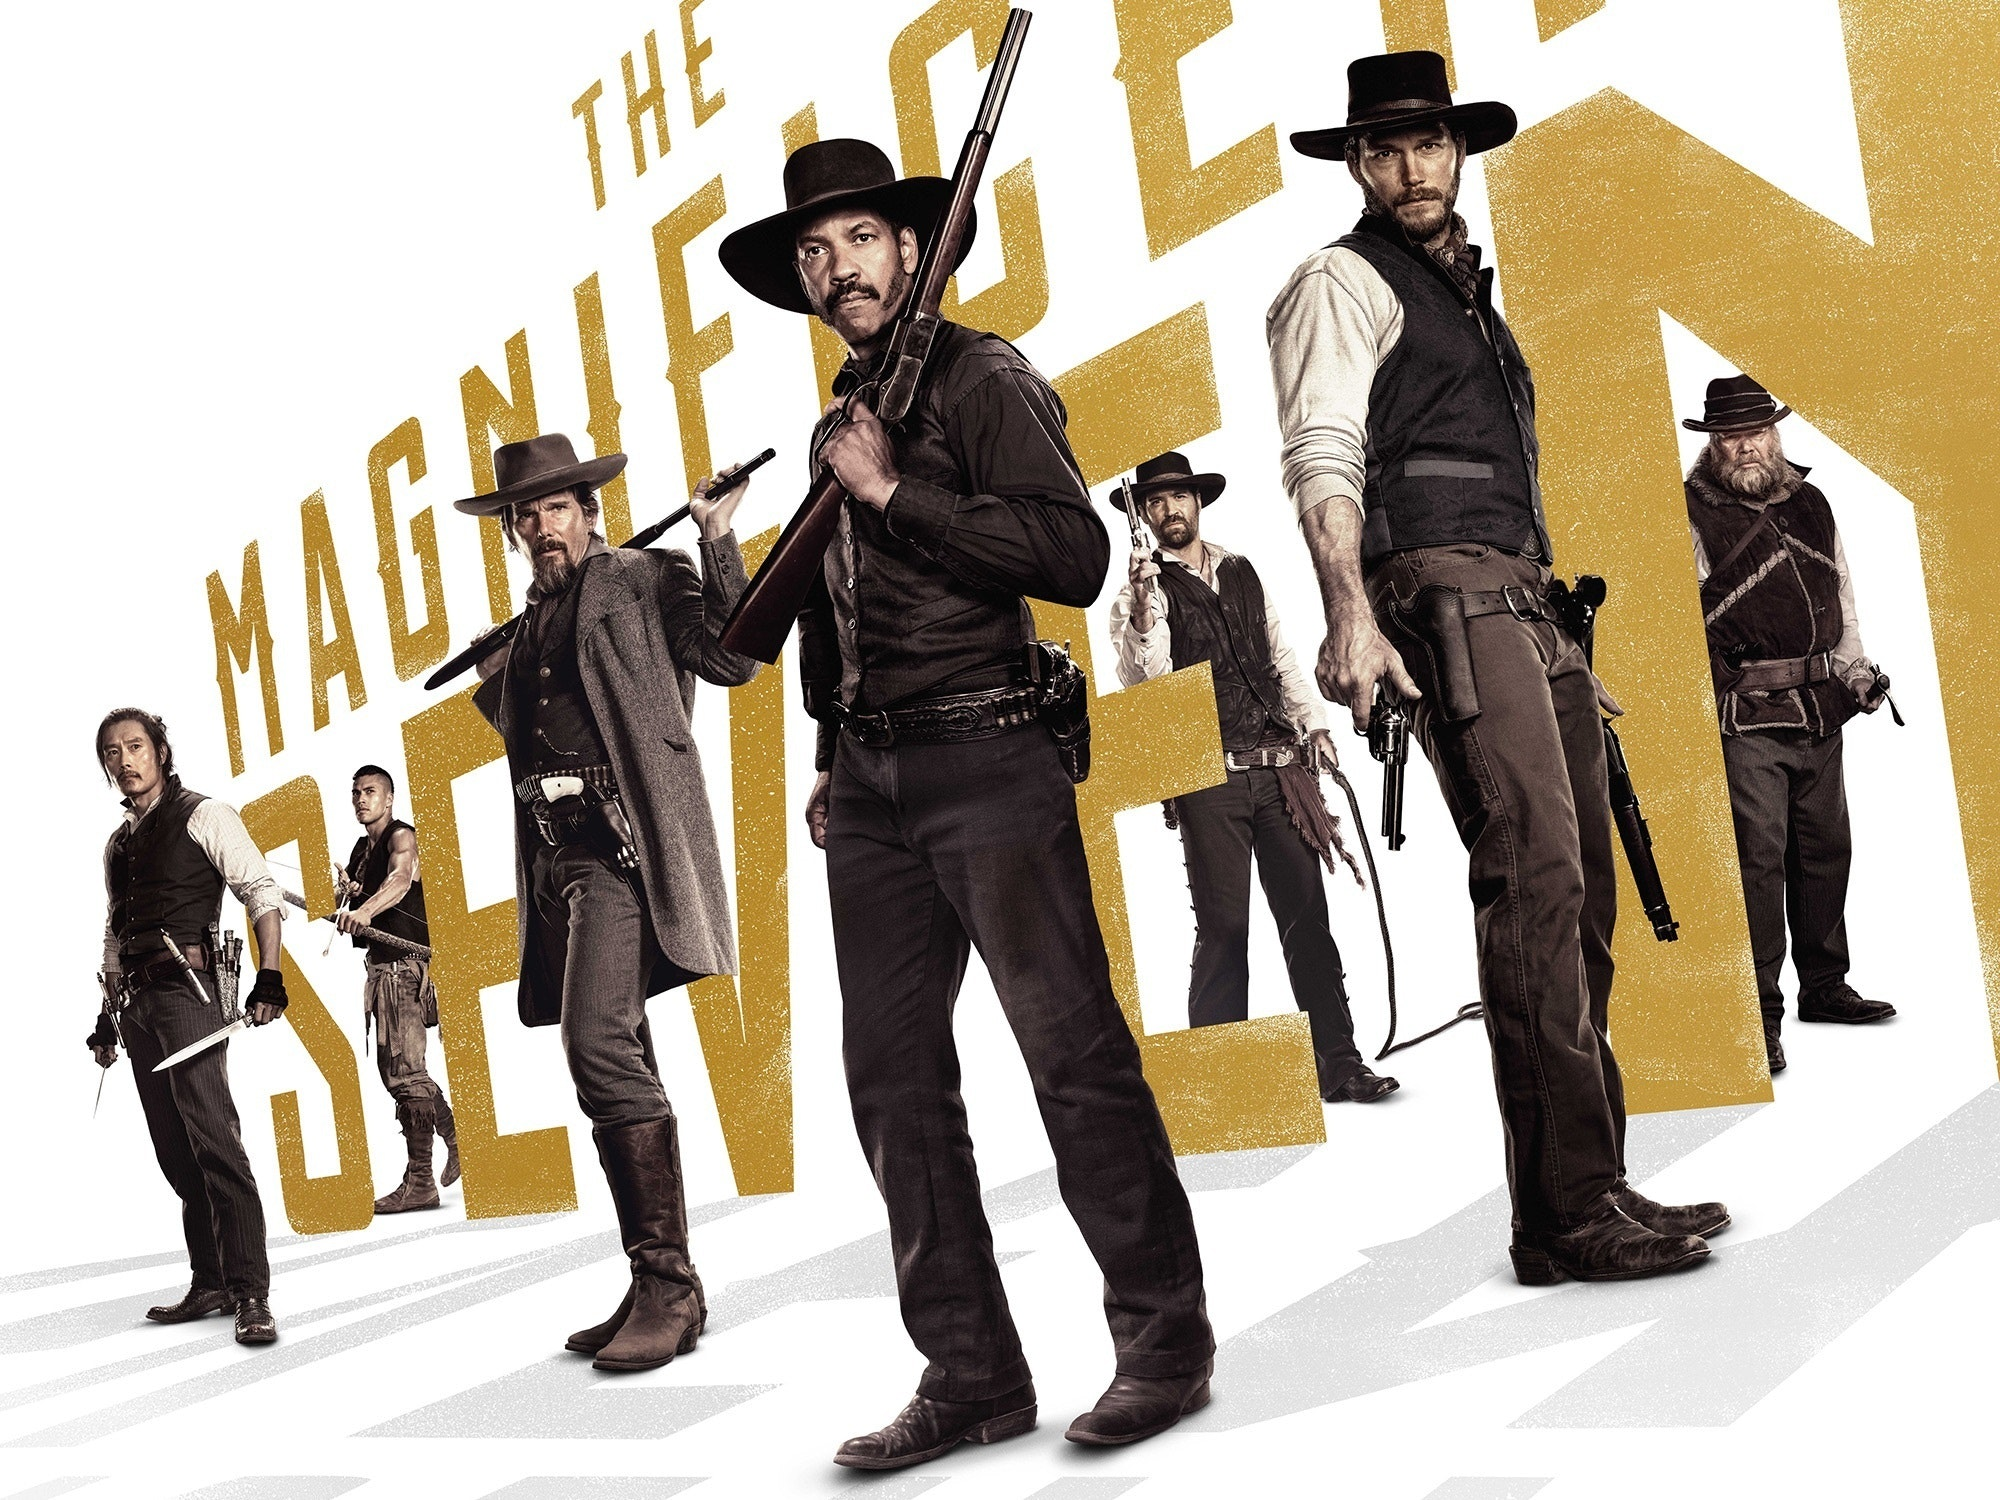 'Magnificent Seven' Is What People Want in a Western Now